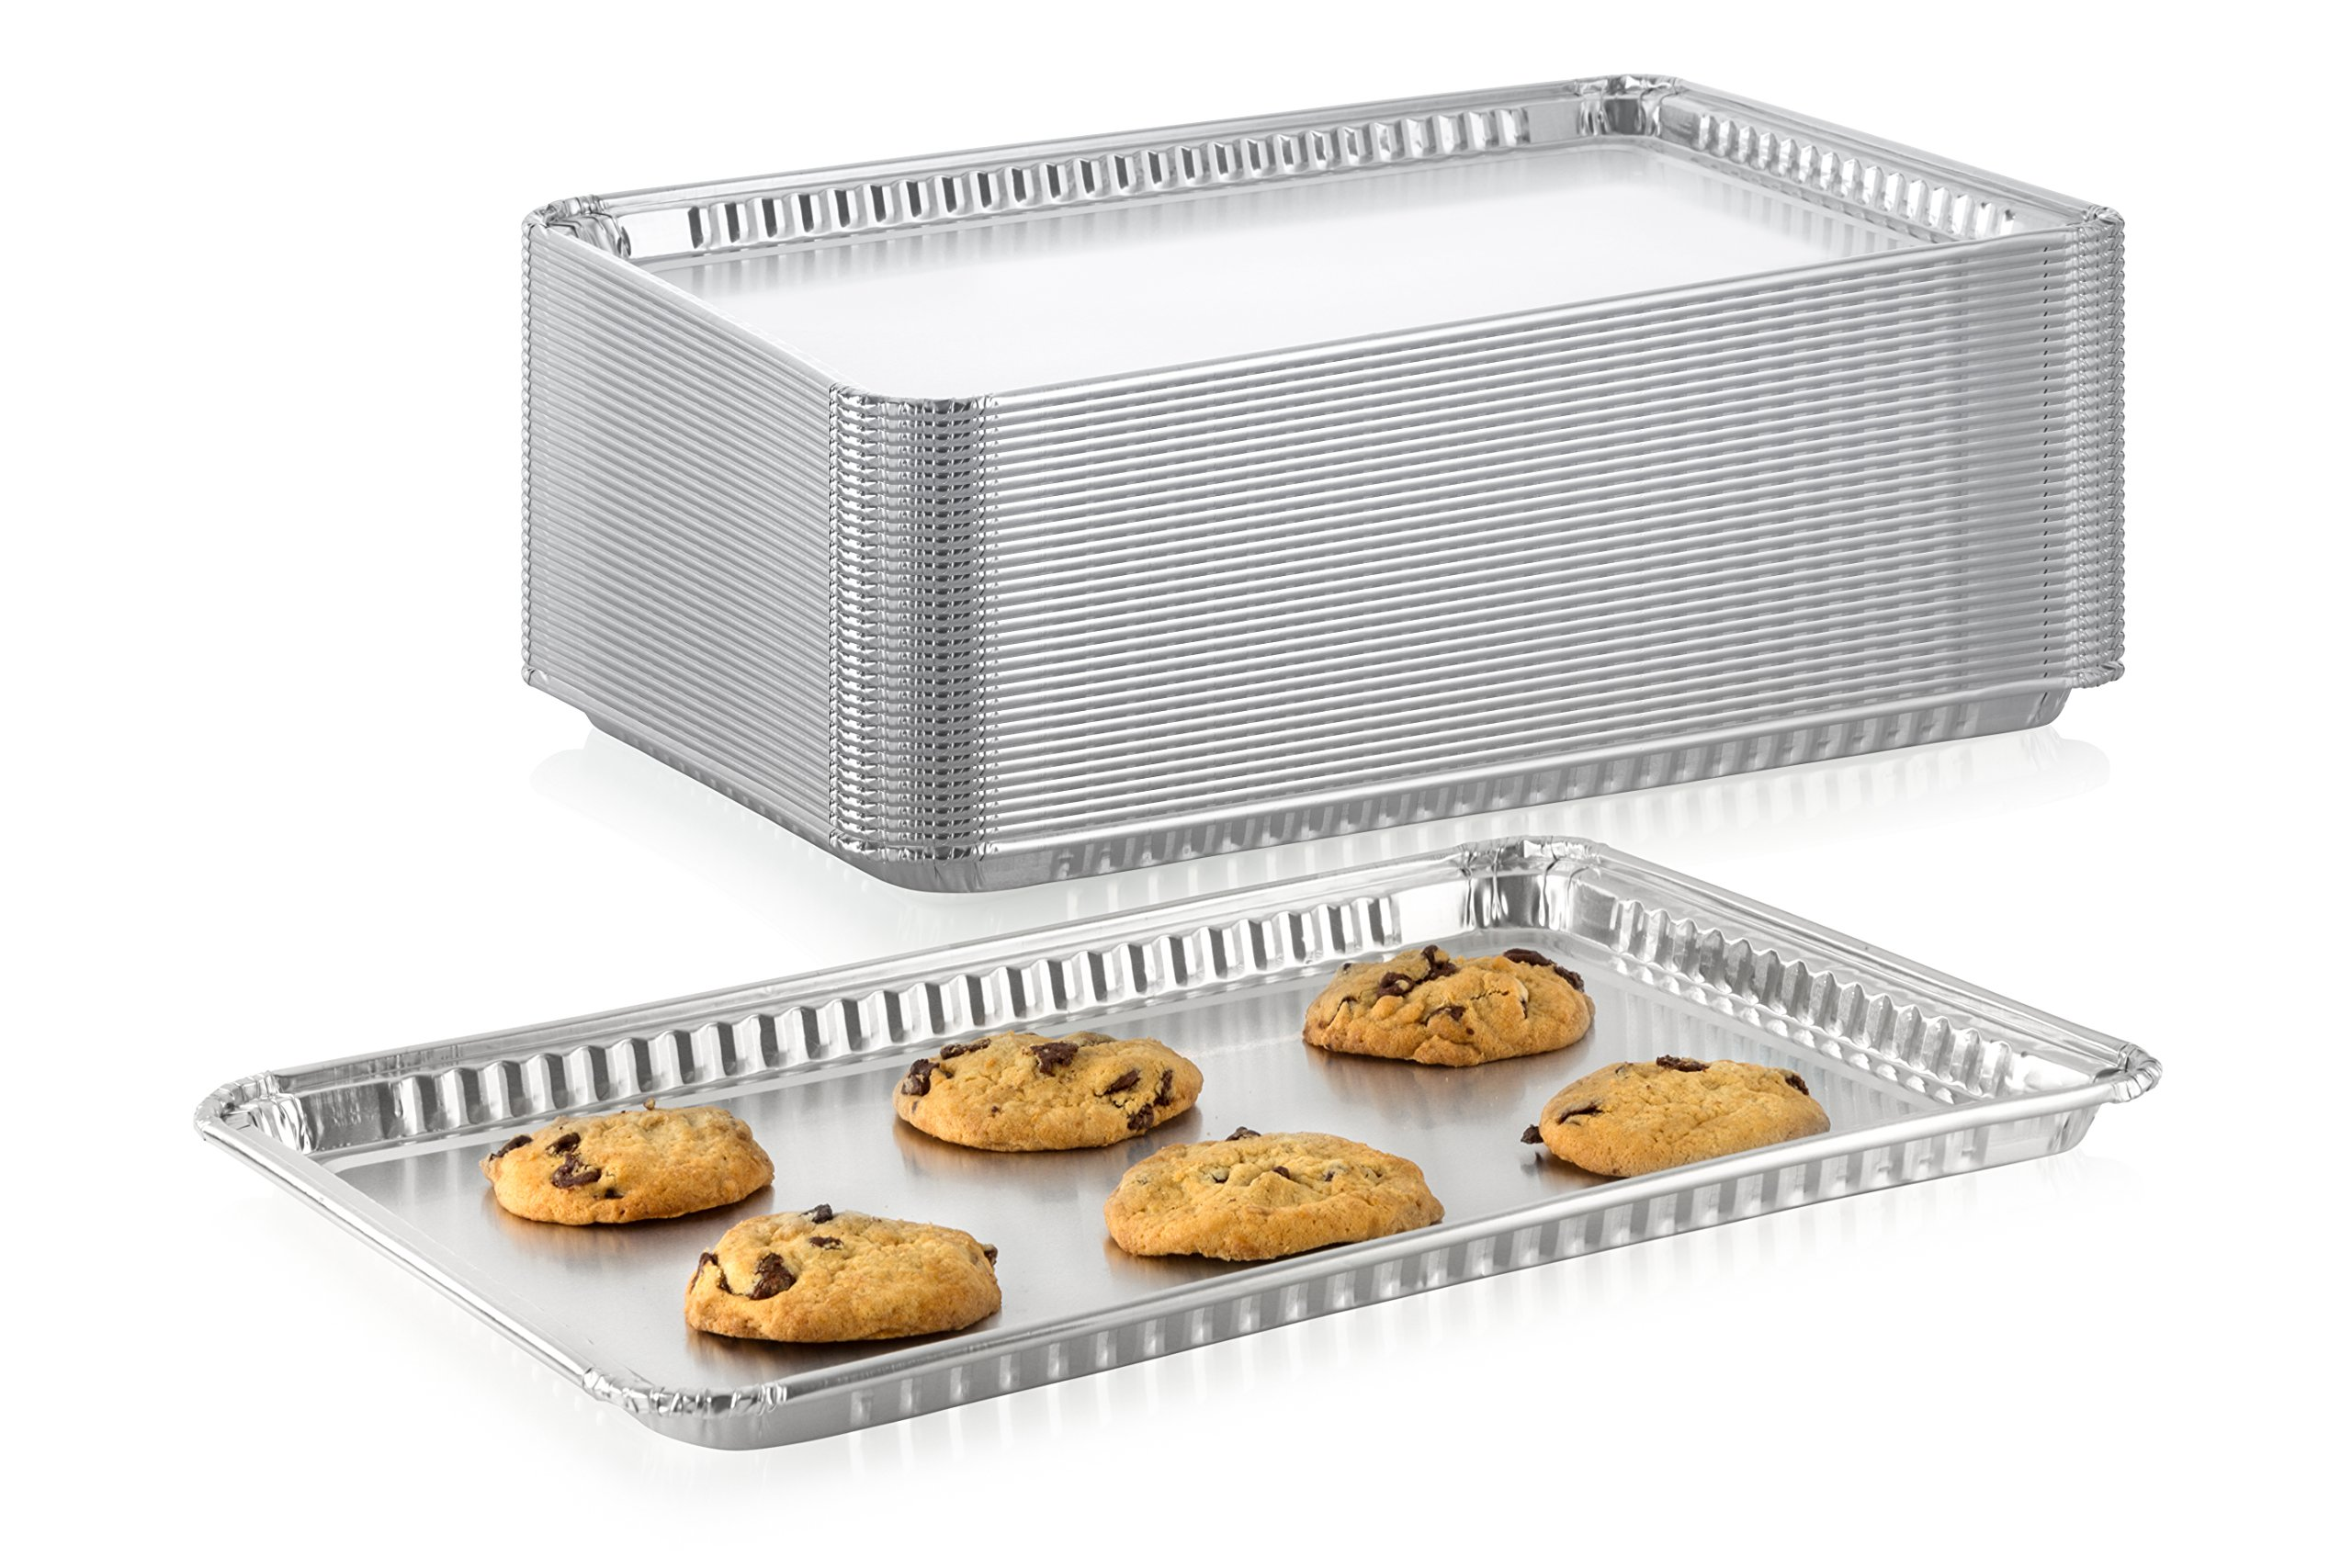 Pack of 10 Durable Aluminum -1/2 Half Size Sheet Baking Pan| Super Strong Disposable Foil Baking Tins | Ideal for Cakes, Cookies, Biscuits Pastries, Pizza and More | Size: 17-5/8'' L x 12-13/16'' W